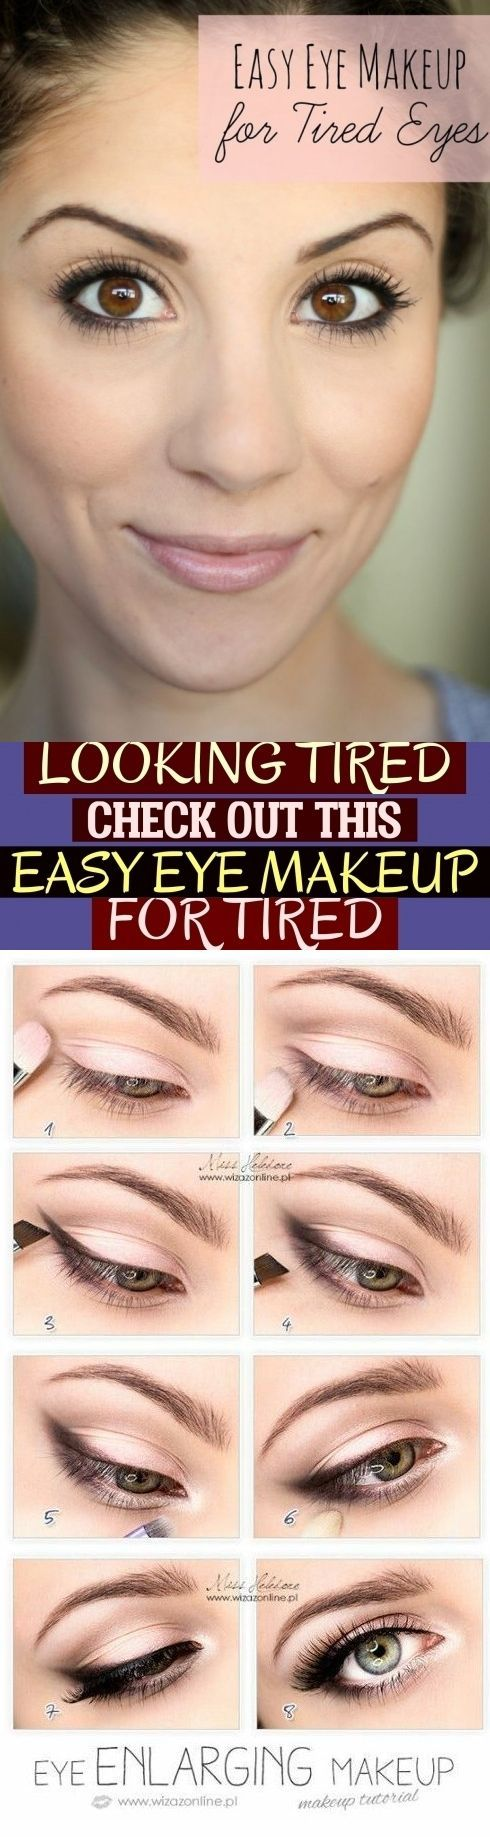 Looking Tired Check Out This Easy Eye Makeup For Tired